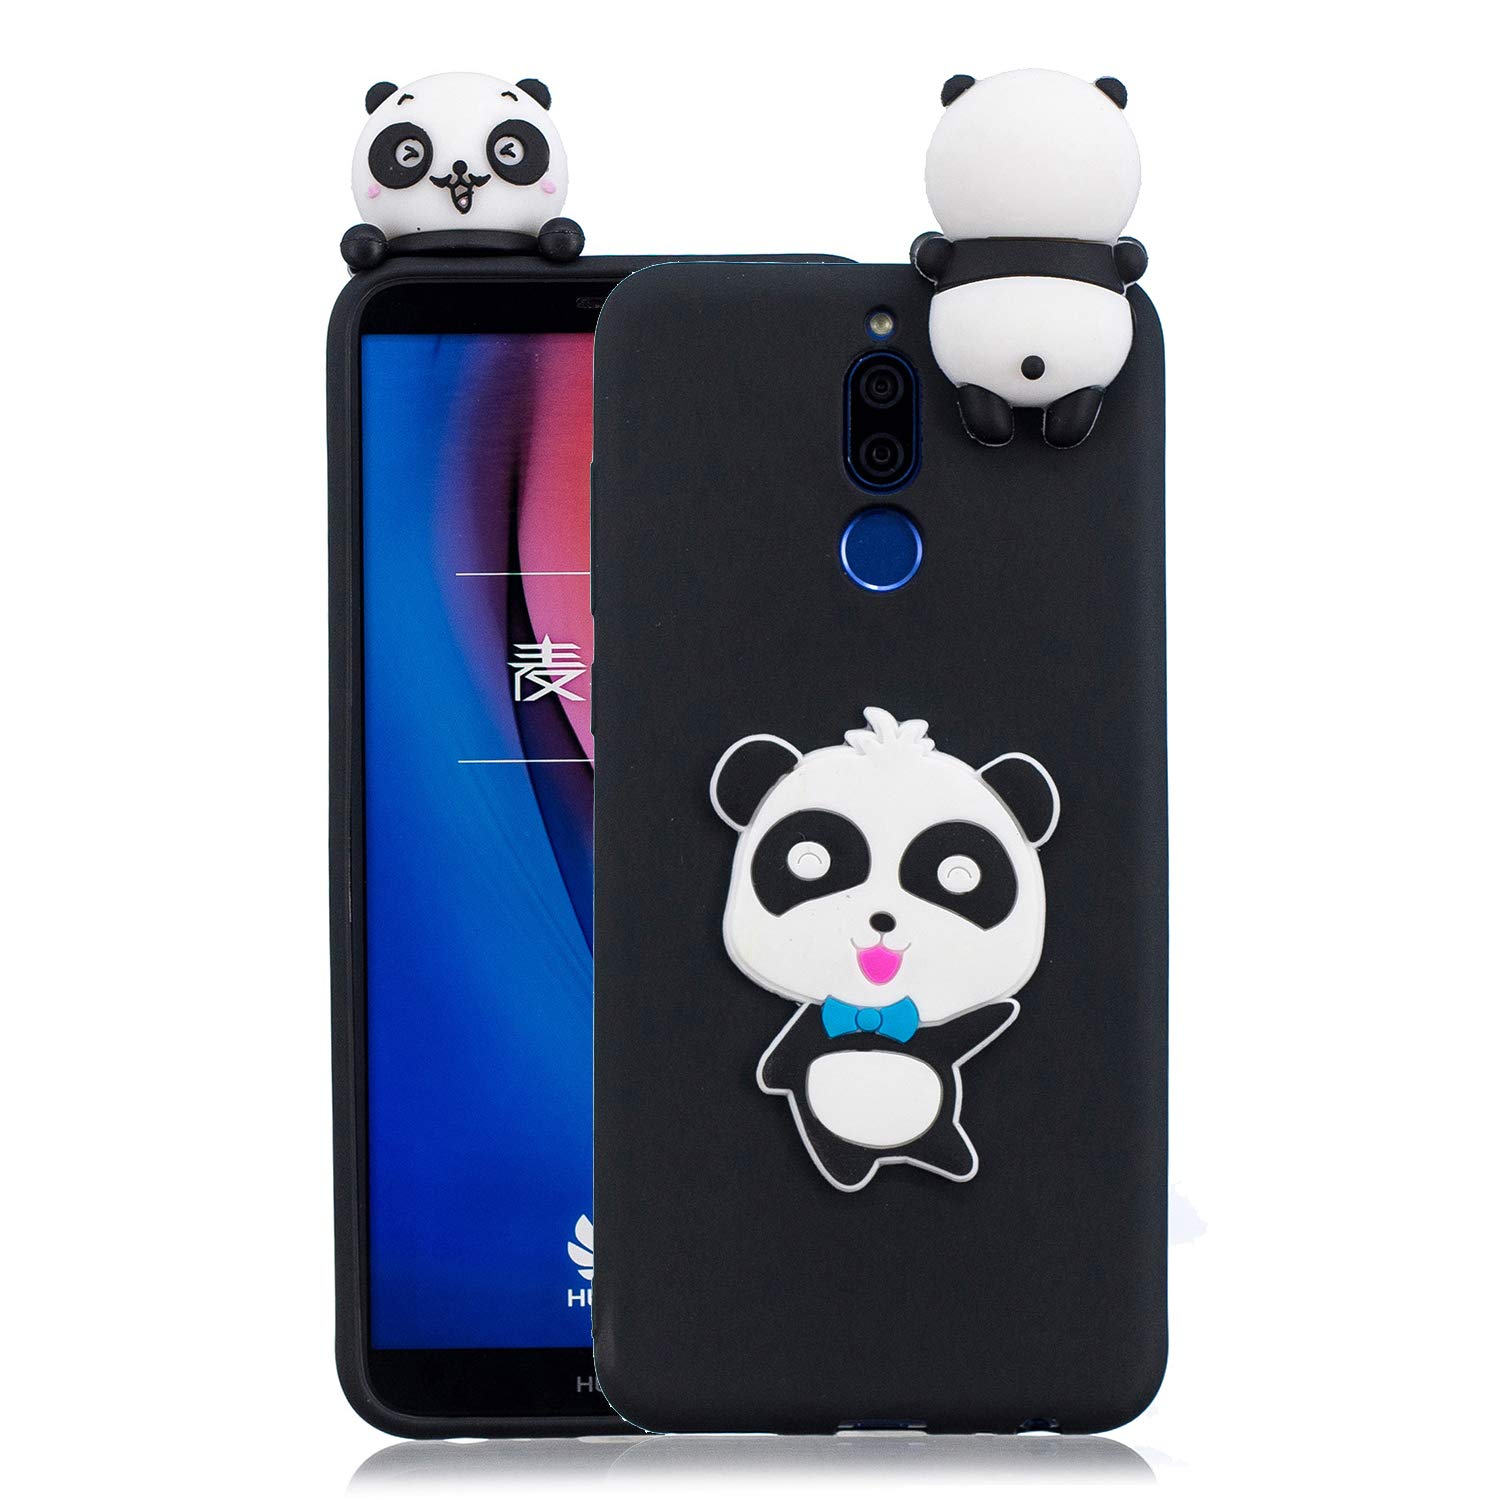 for Huawei Mate 10 Lite Silicone Case with Screen Protector,QFFUN 3D Cartoon [Panda] Pattern Design Soft Flexible Slim Fit Gel Rubber Cover,Shockproof Anti-Scratch Protective Case Bumper